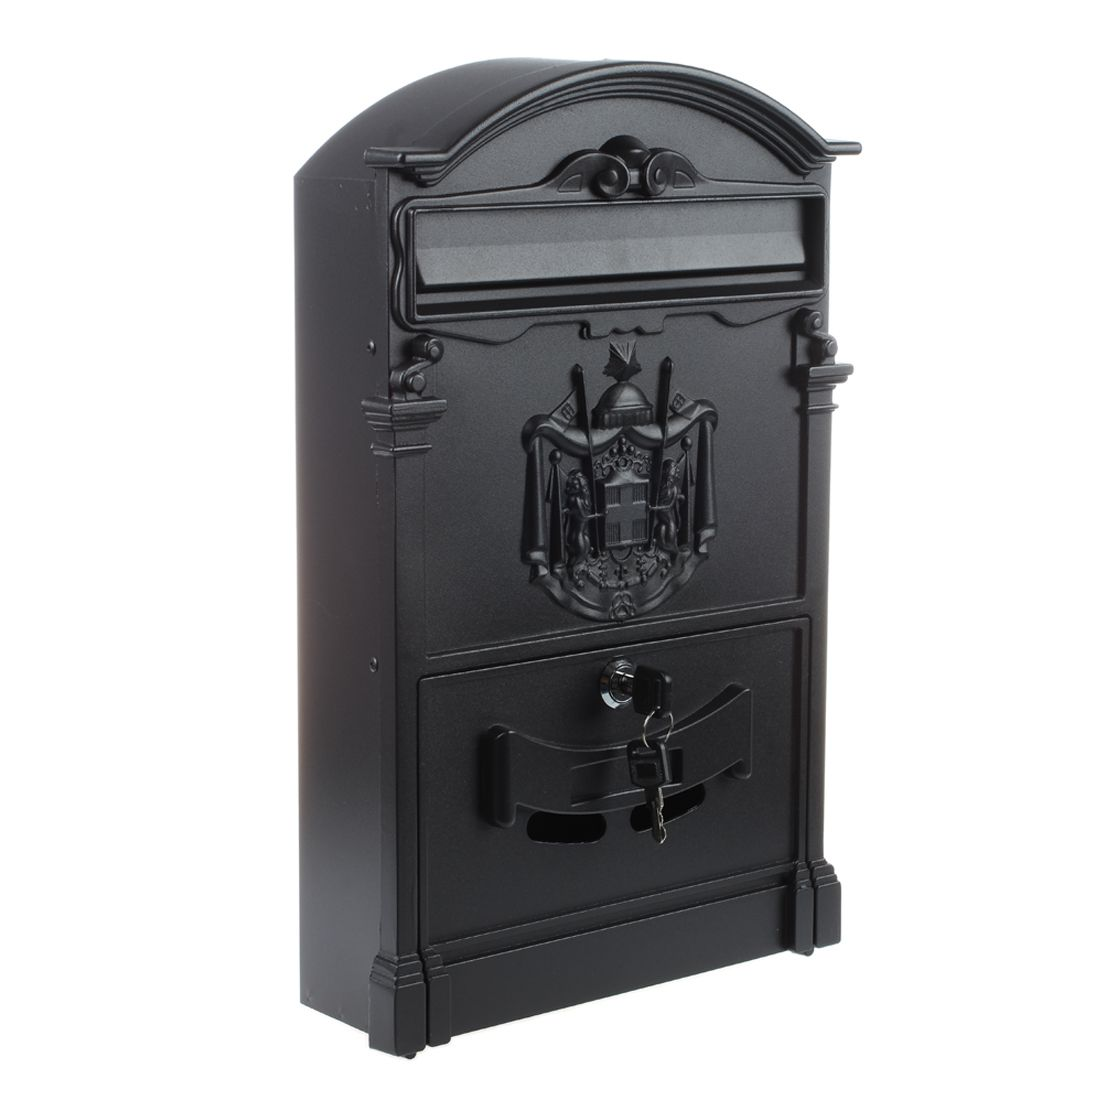 Home Decor Heavy Duty Black Aluminium Lockable Secure Mail Letter Post Box Letterbox New Room Decoration